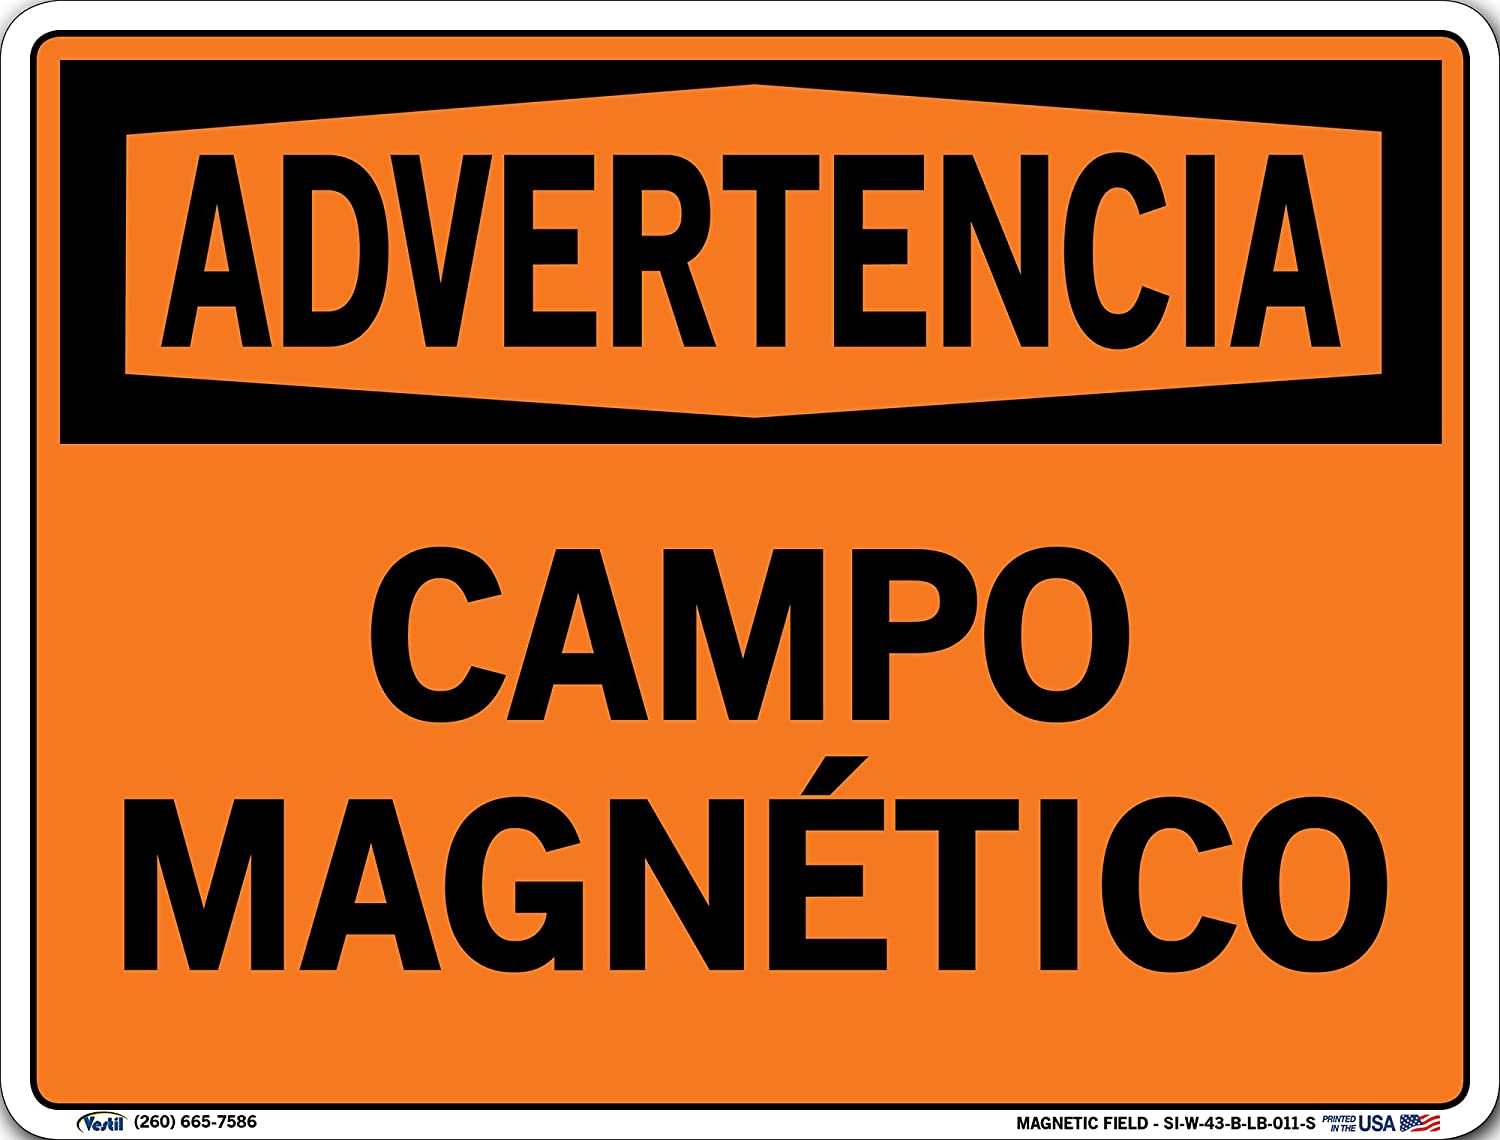 0.011 Overall Size Vestil SI-W-43-C-LB-011-S MAGNETIC FIELD//CAMPO MAGN/ÉTICO Warning Label Vinyl 14.5 W x 10.5 H